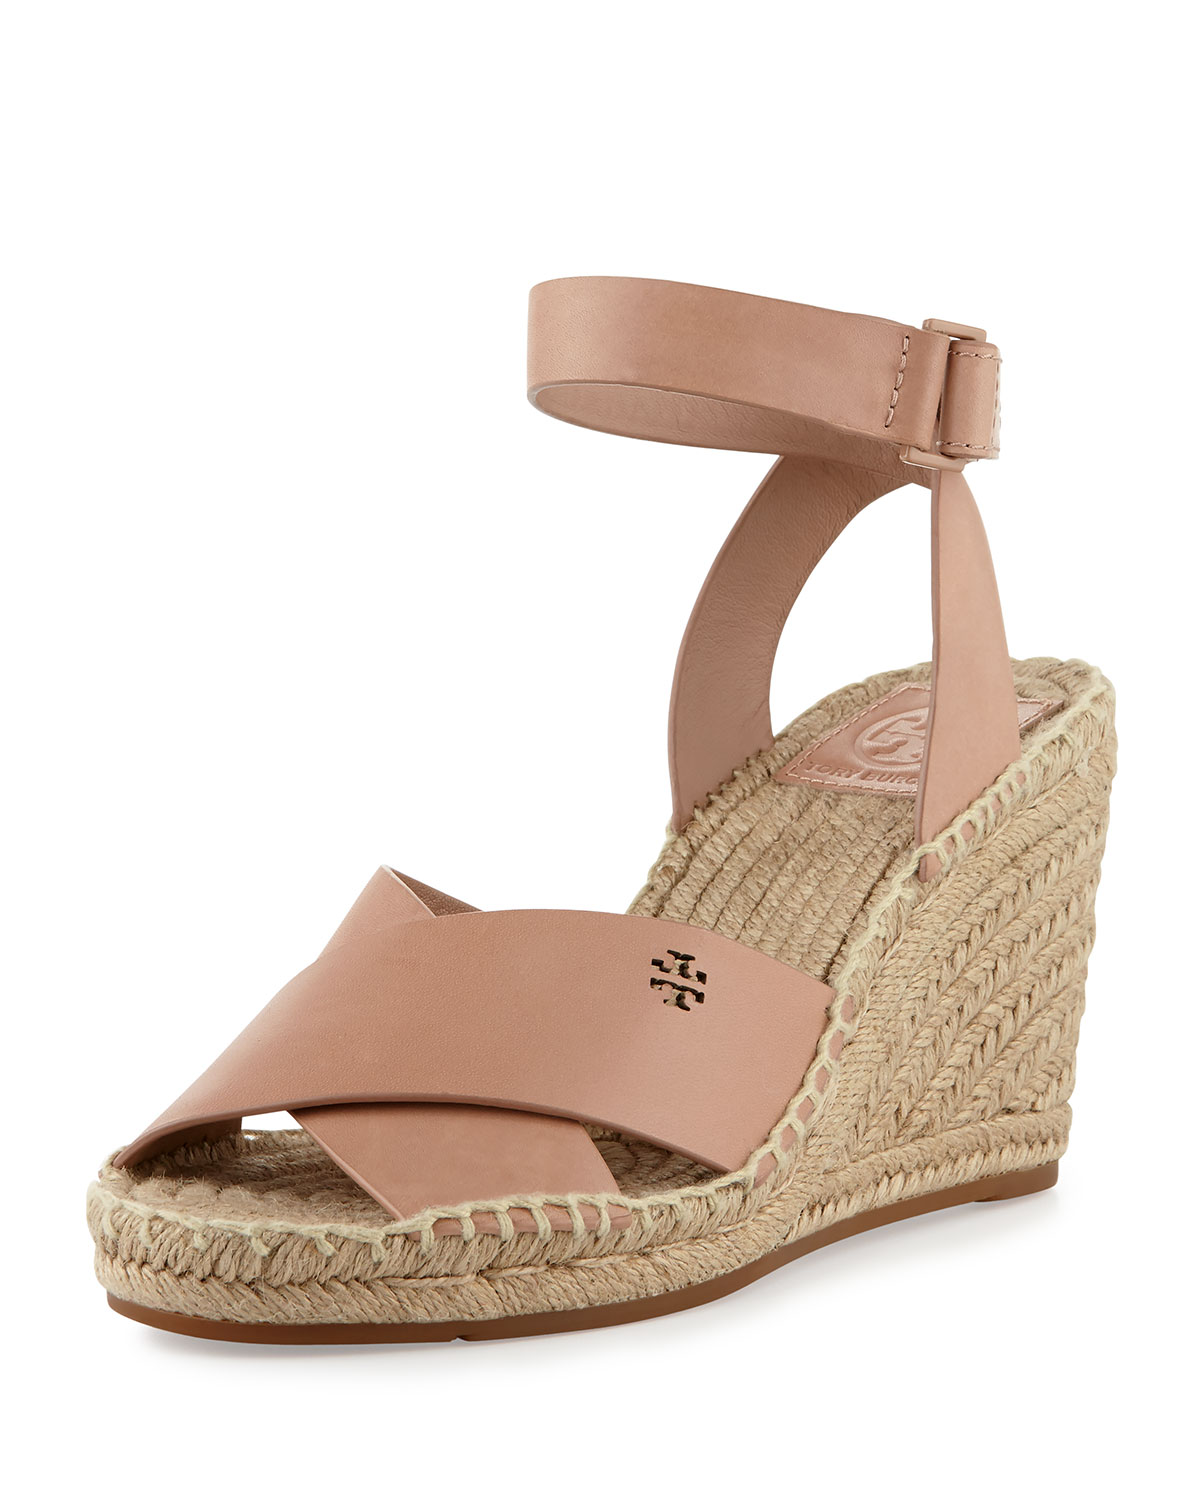 5ec04be0662 Tory Burch Bima Leather Wedge Espadrille Sandal